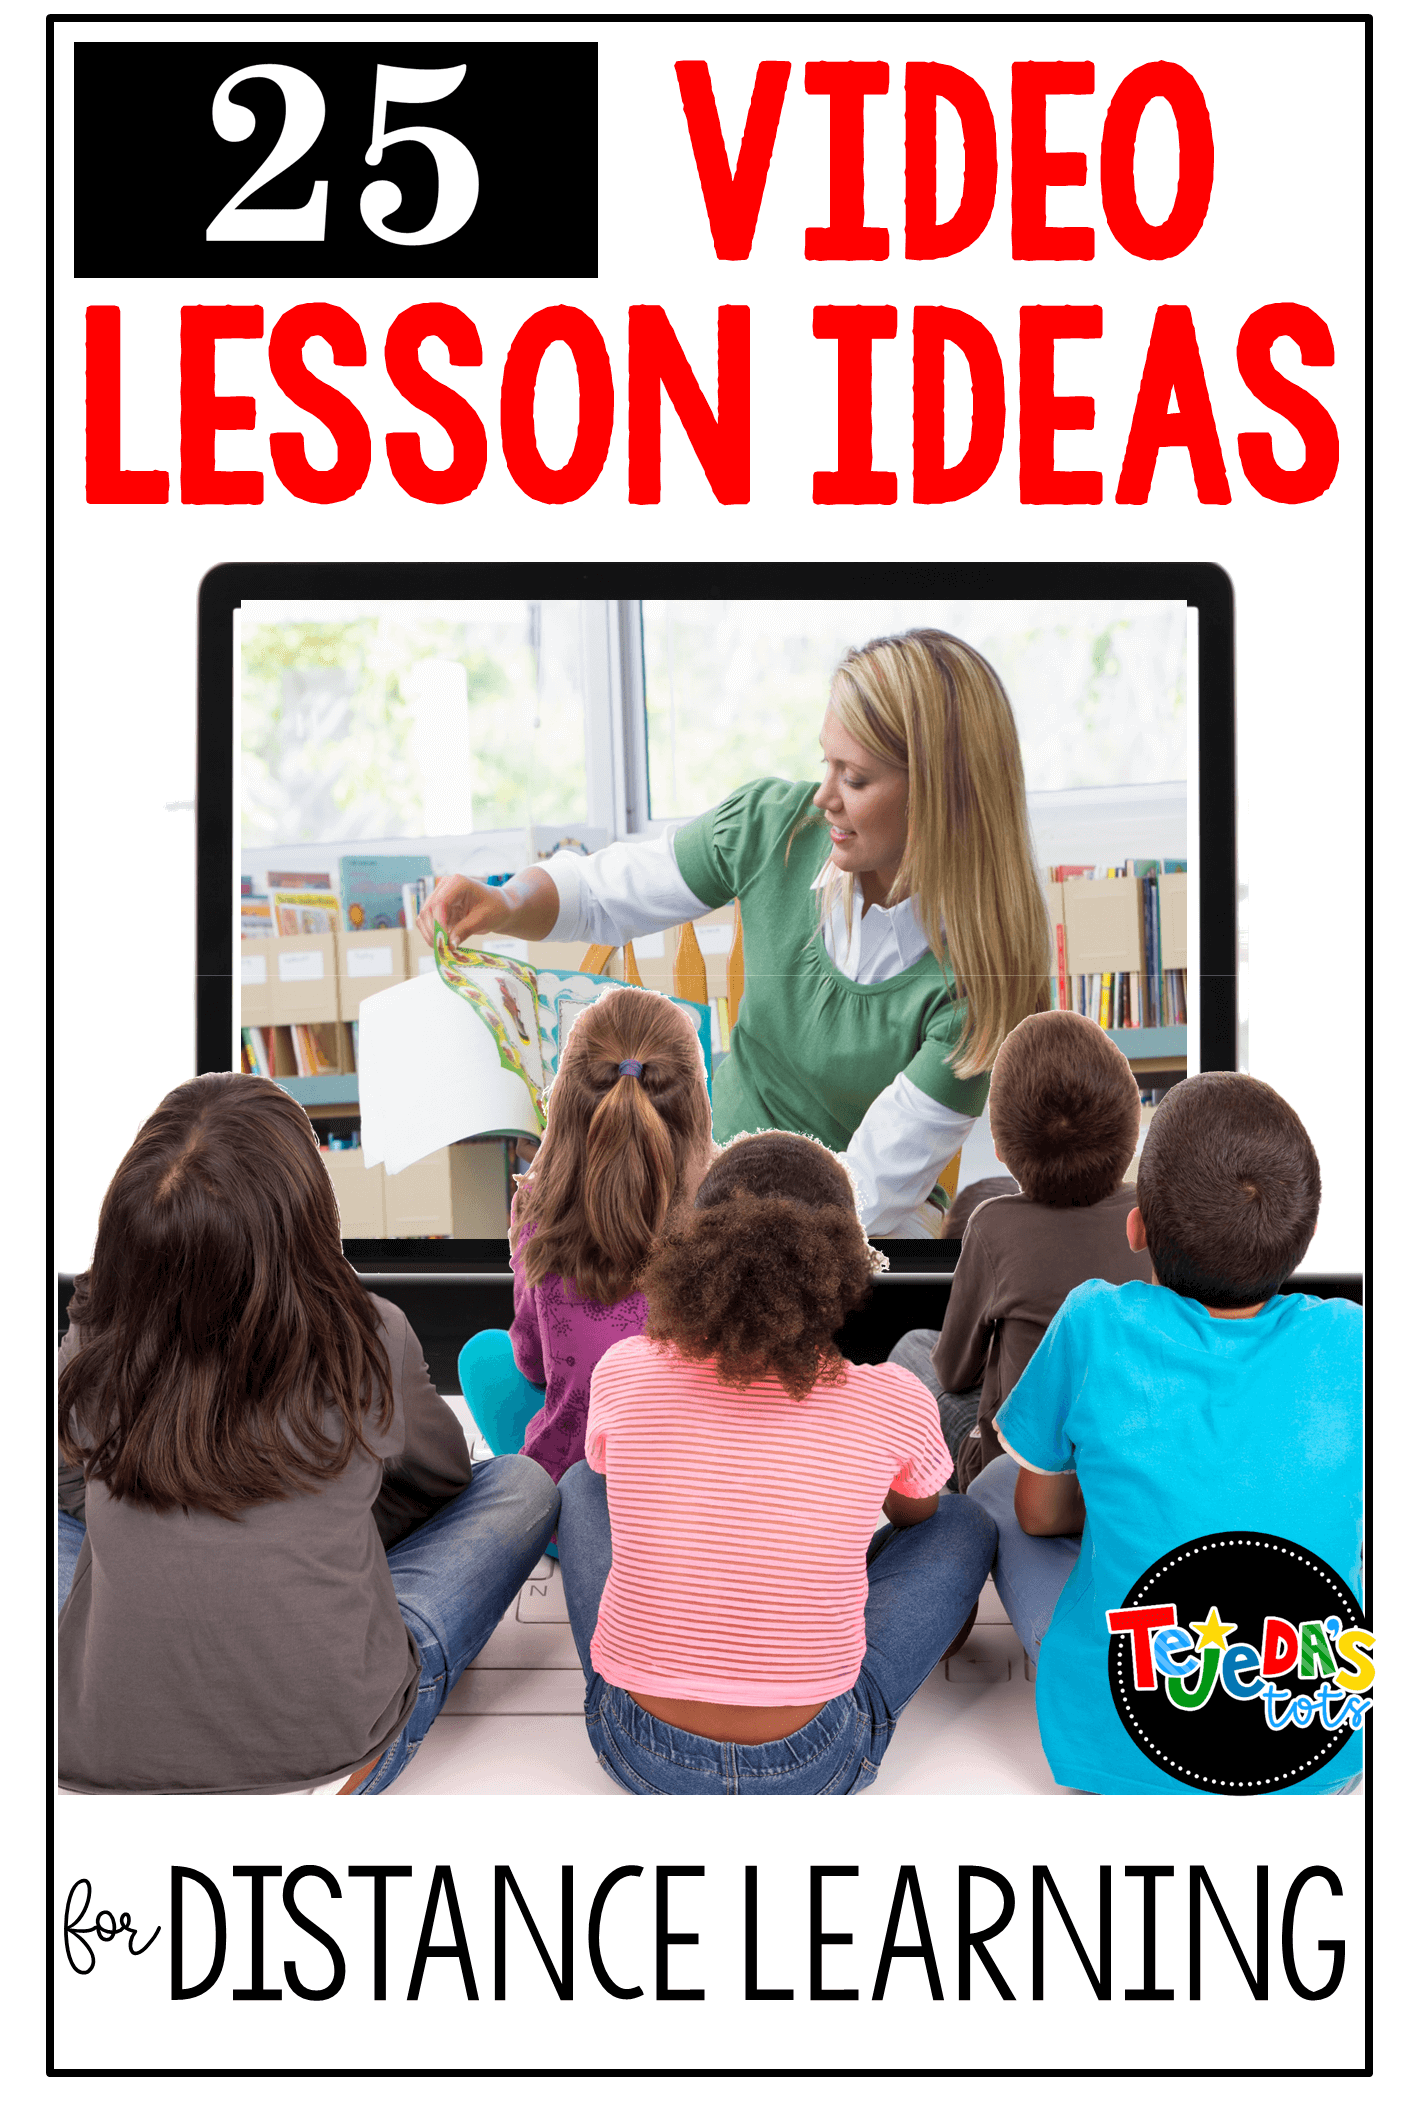 Need ideas for lessons to teach via video during distance learning? Here are 25 + ideas and tips on teaching virtually, including activities, organization, management, and ideas for making it fun! Includes a freebie too! Perfect for kindergarten and first grade students to do at home.